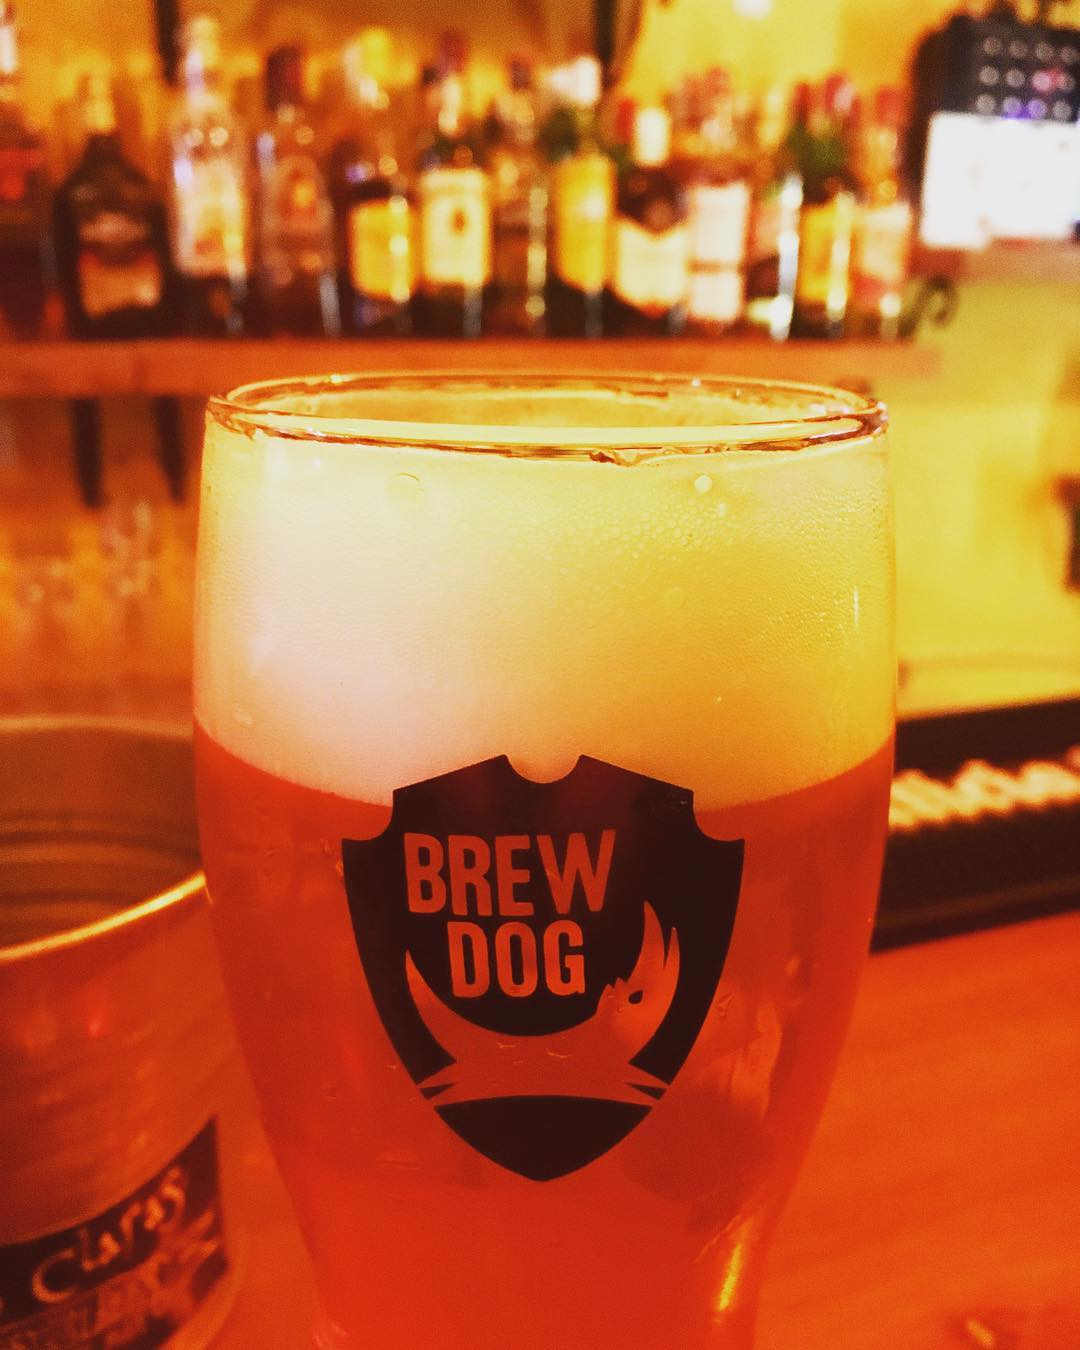 Time for a Brew Dog. Cheers #bierenergie #schmiersuff #beer #bier #lasclaras #bar #bailgun